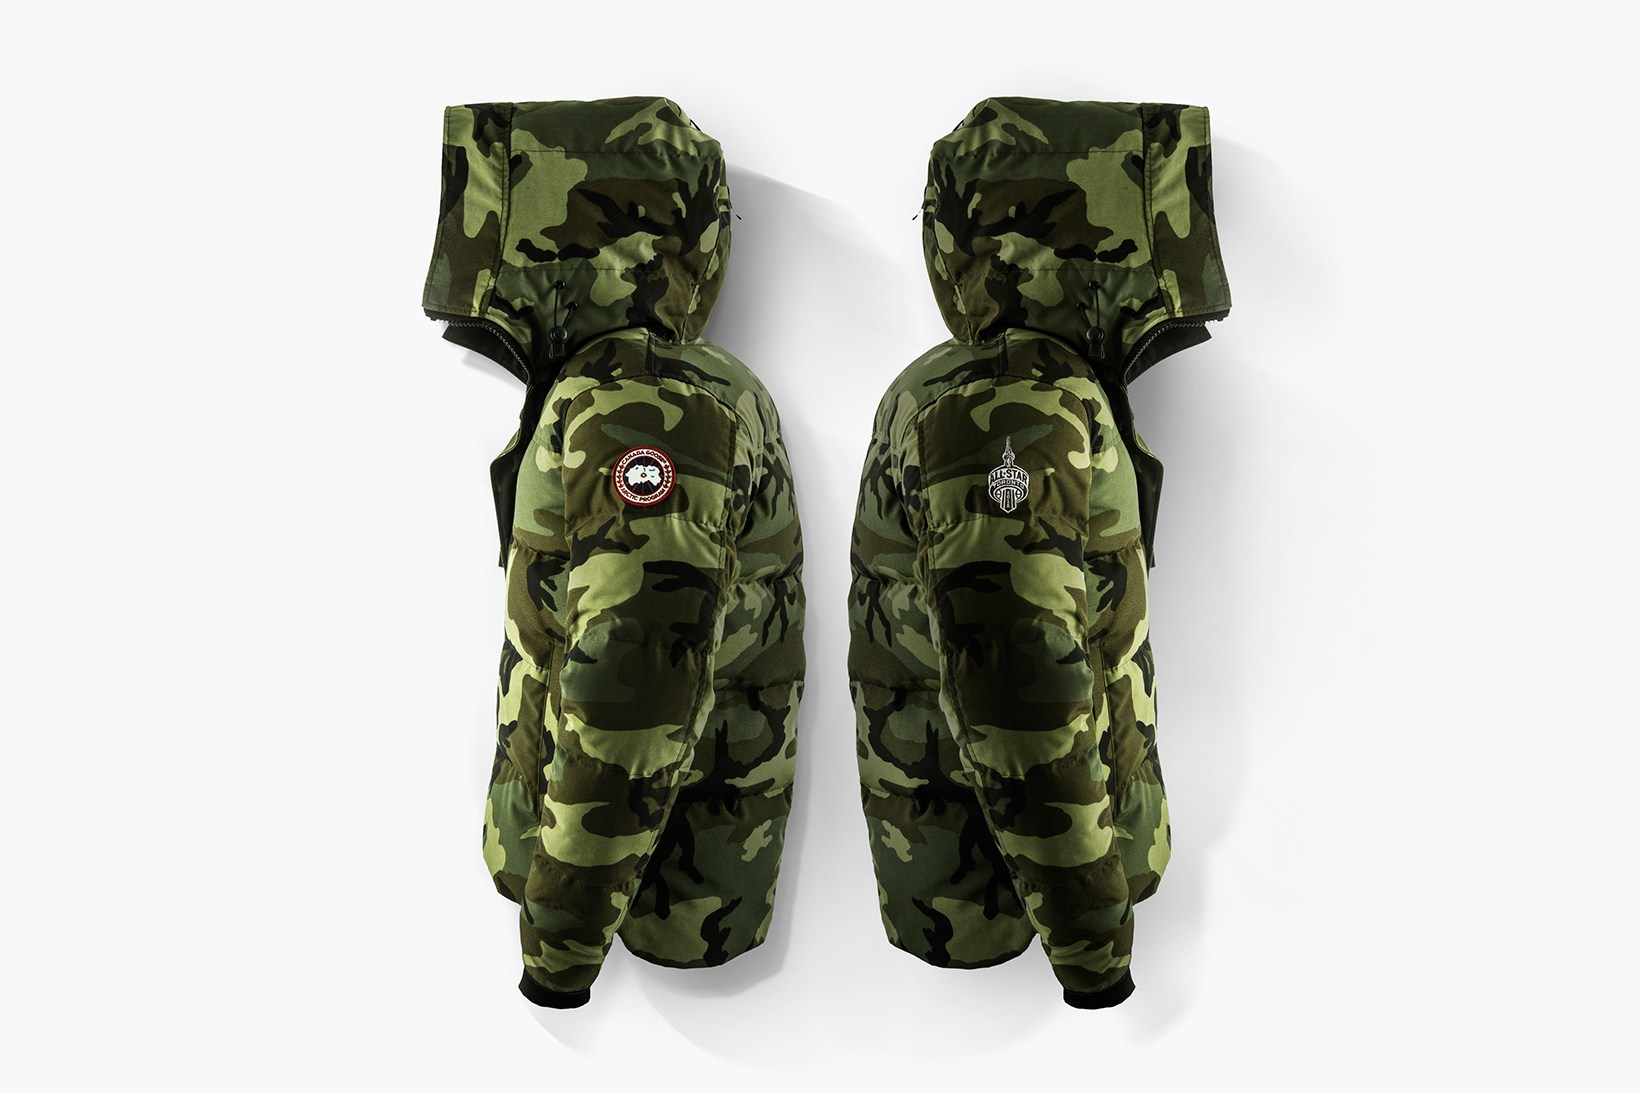 Canada Goose Partners With NBA for All-Star Edition Parkas